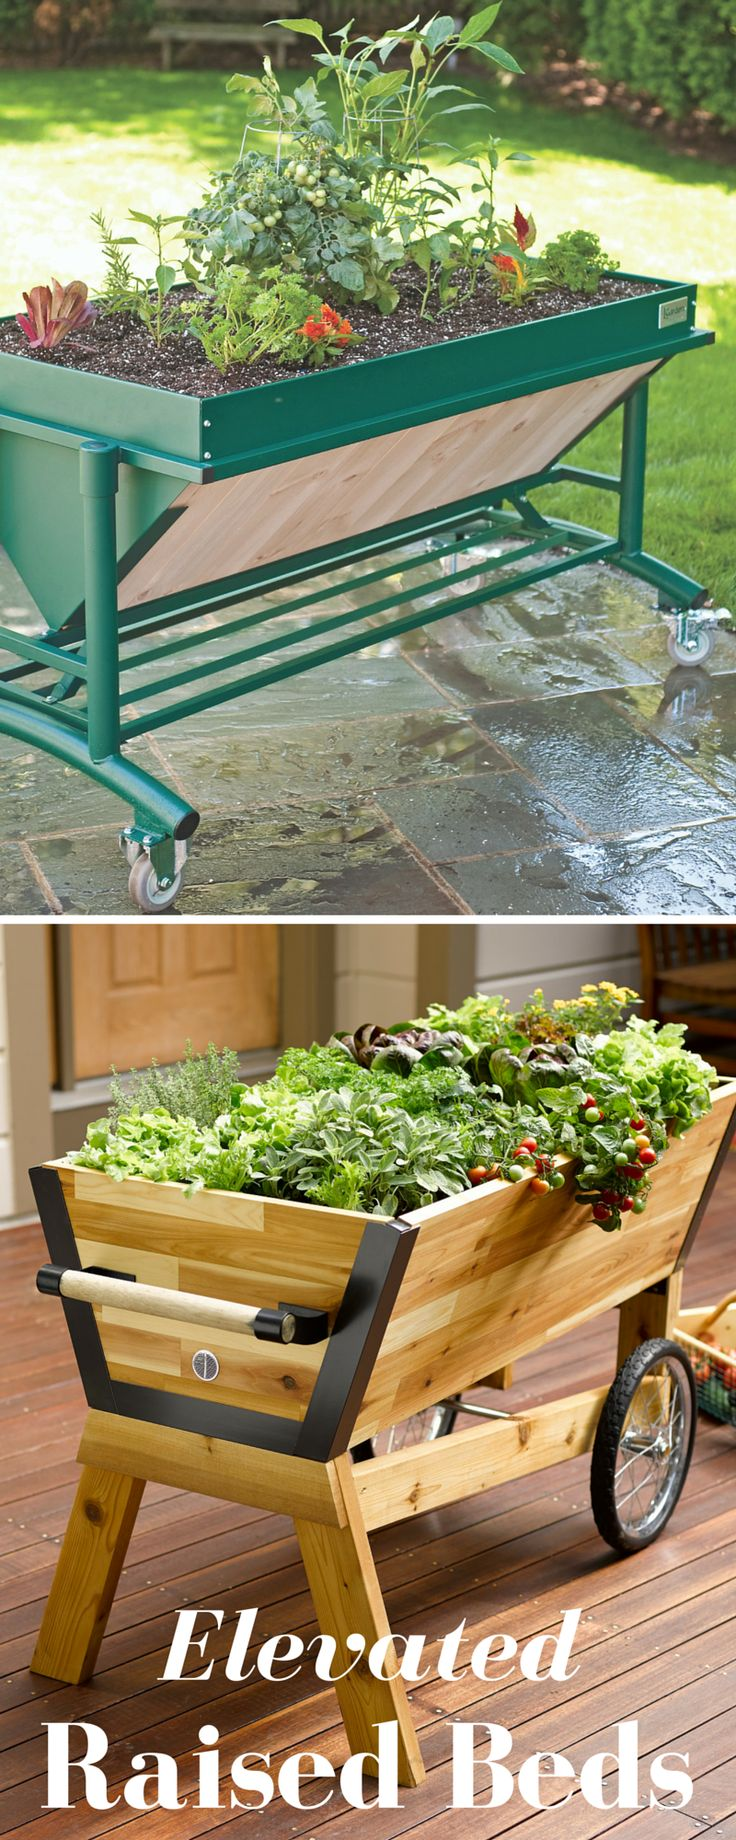 Our Elevated Raised Garden Beds Make Gardening A Breeze